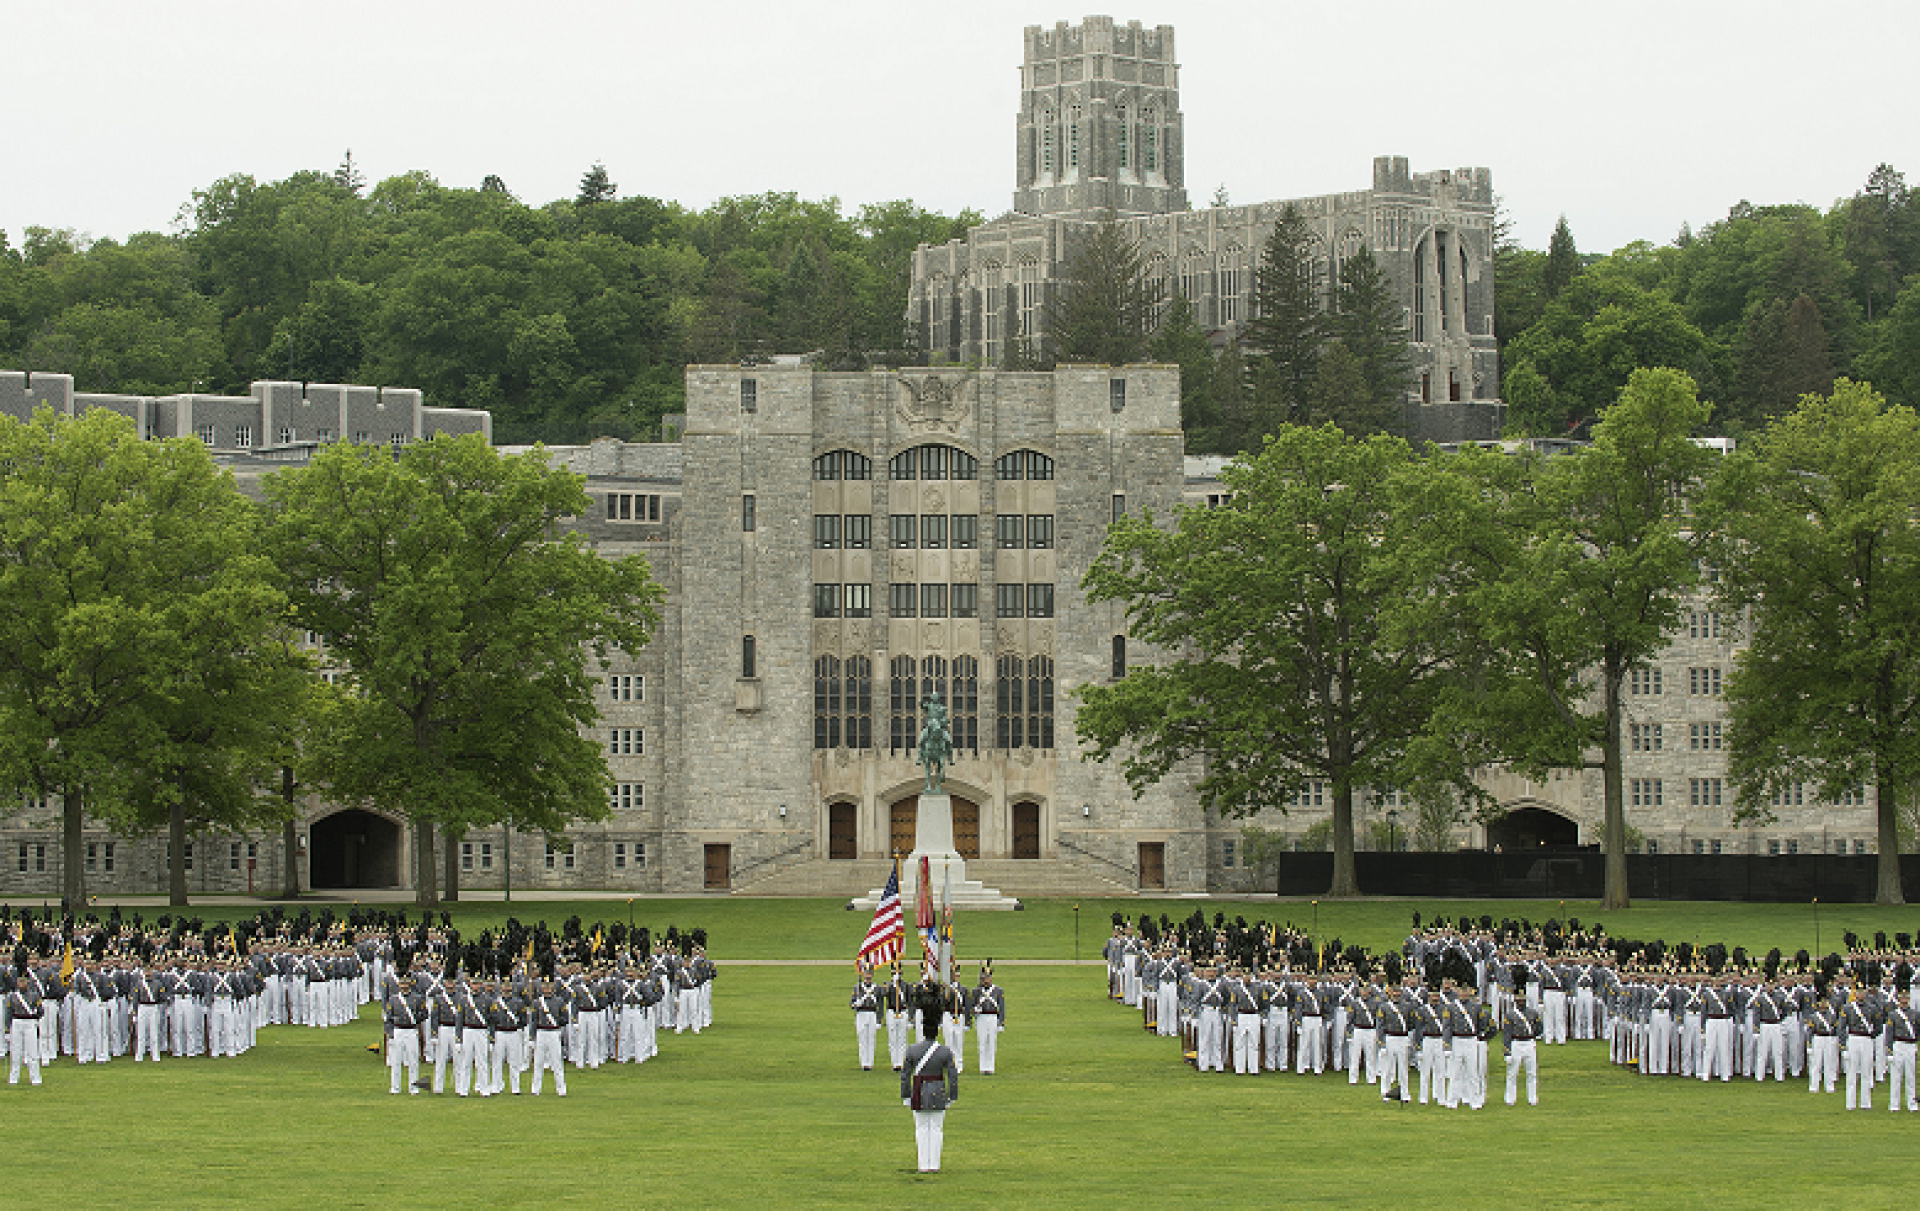 West Point Parents Club of Middle Tennessee